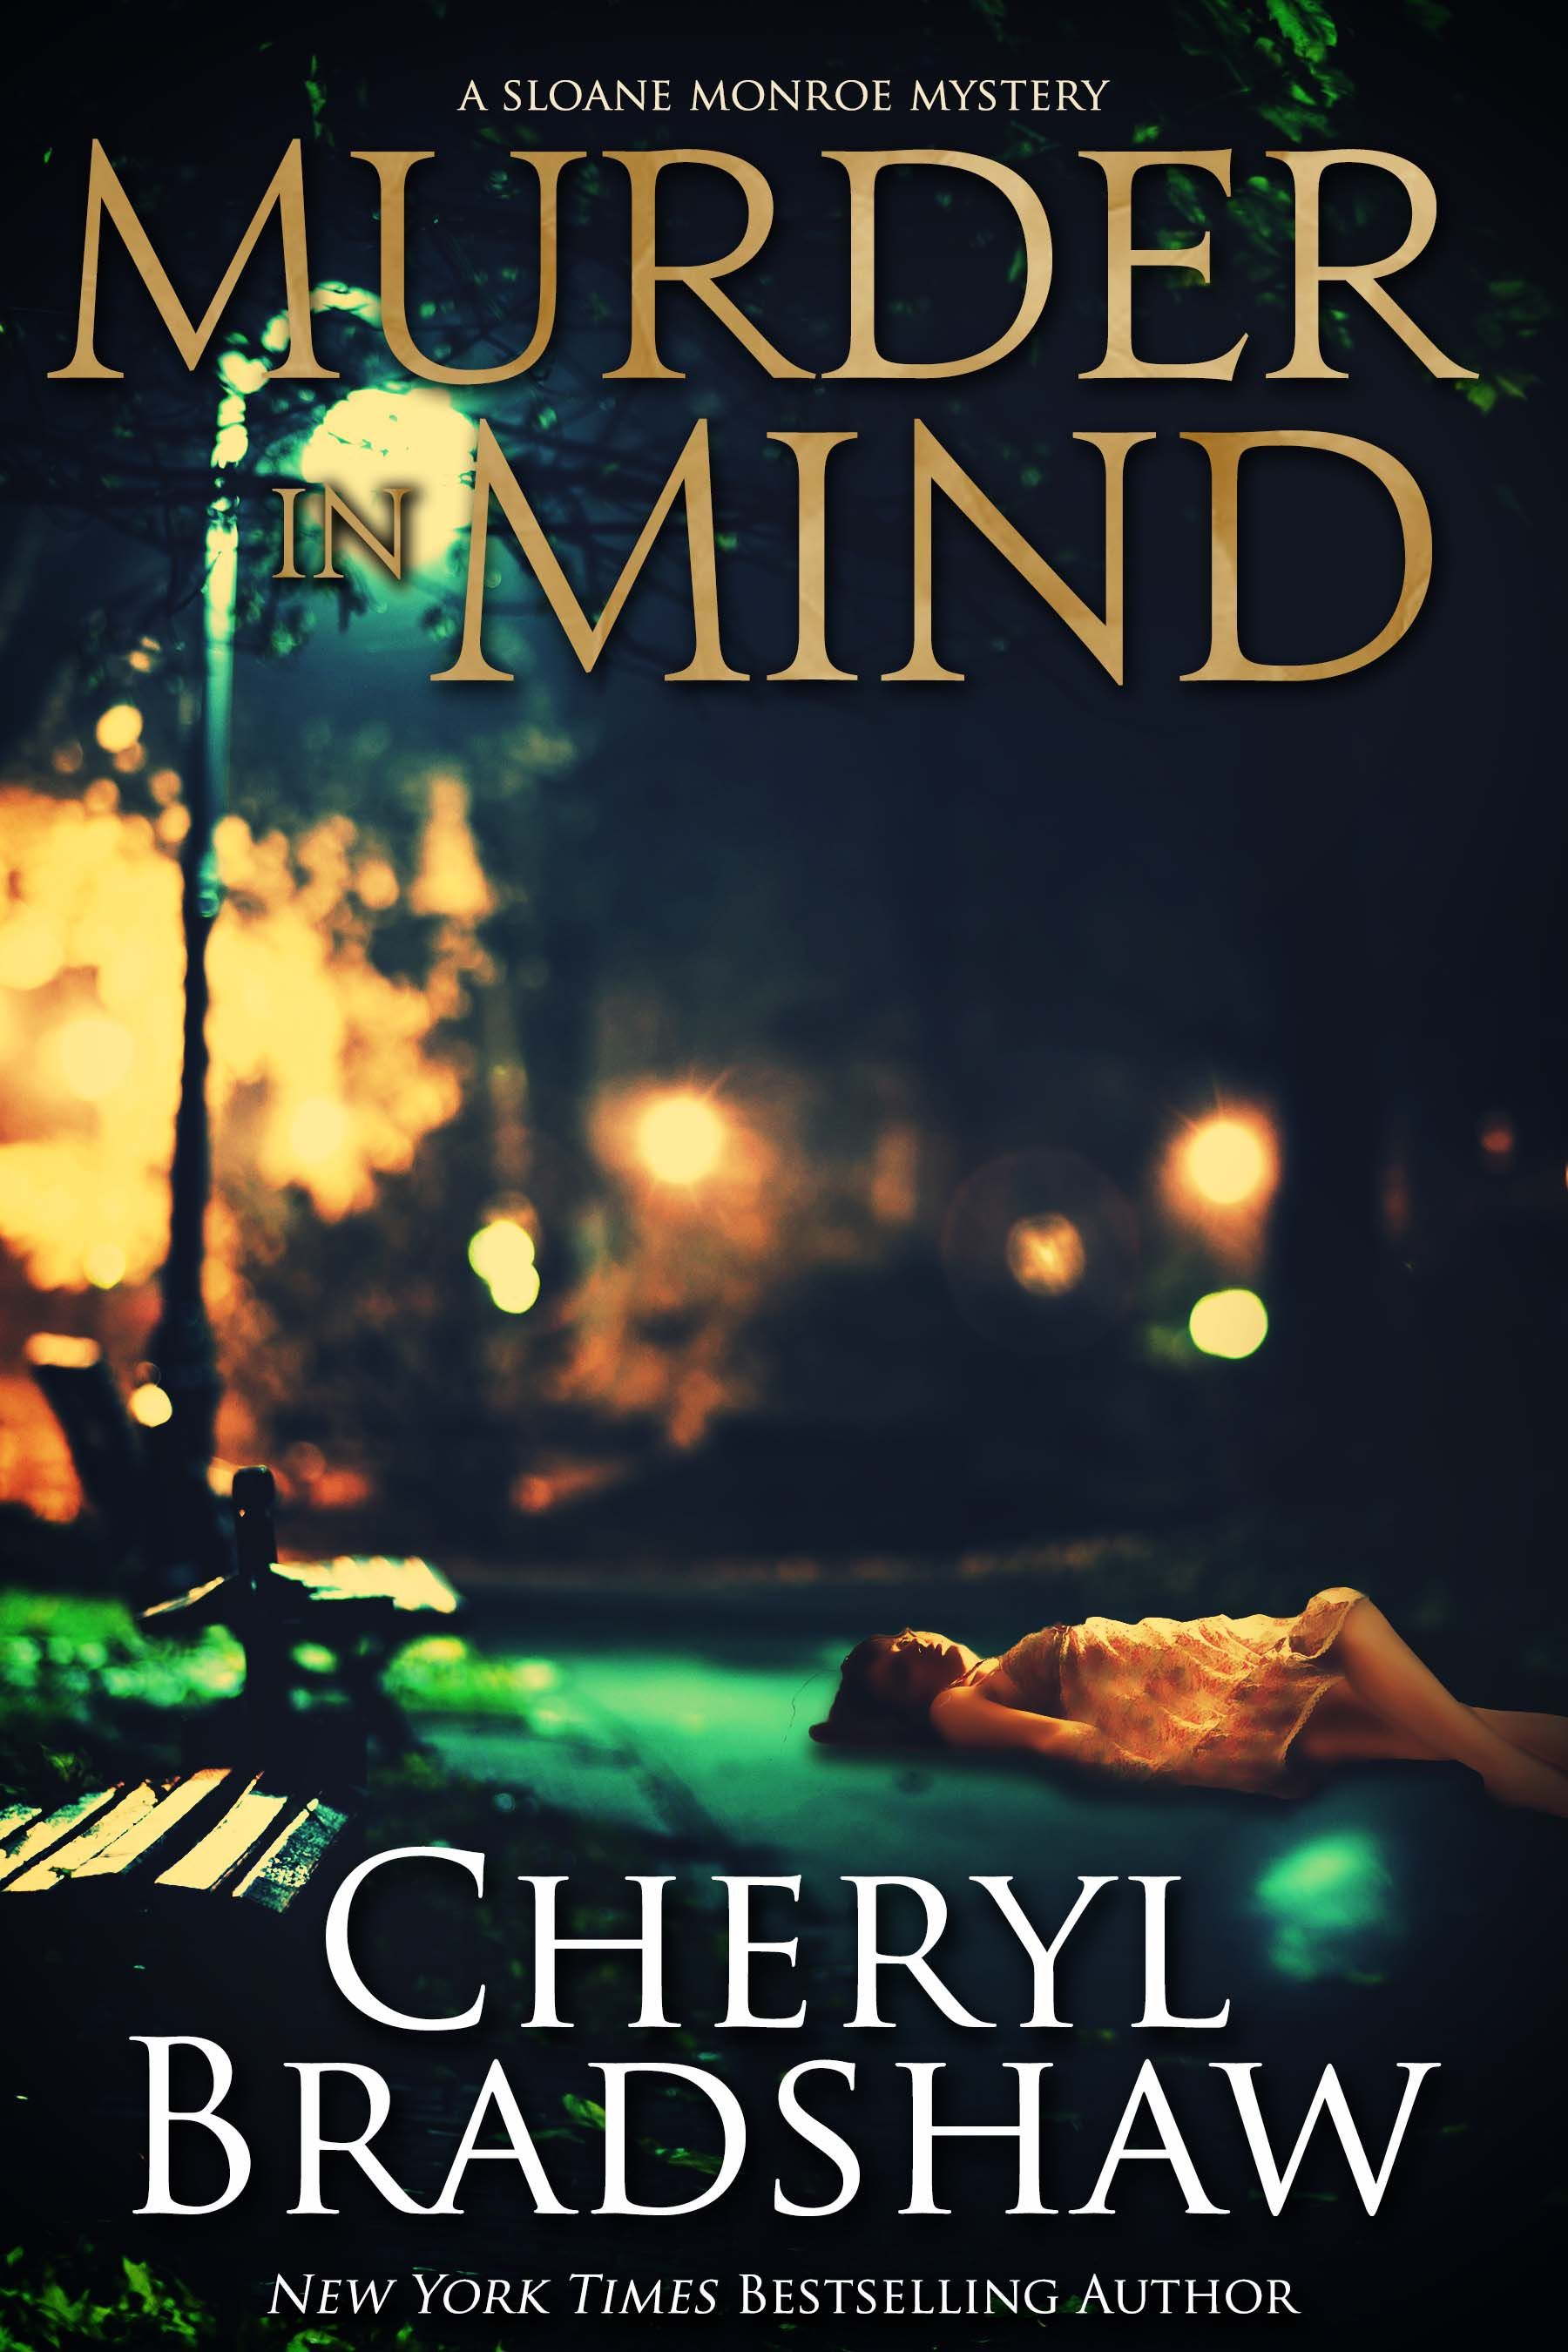 Great Deals On Murder In Mind By Cheryl Bradshaw Limitedtime Free And  Discounted Ebook Deals For Murder In Mind And Other Great Books